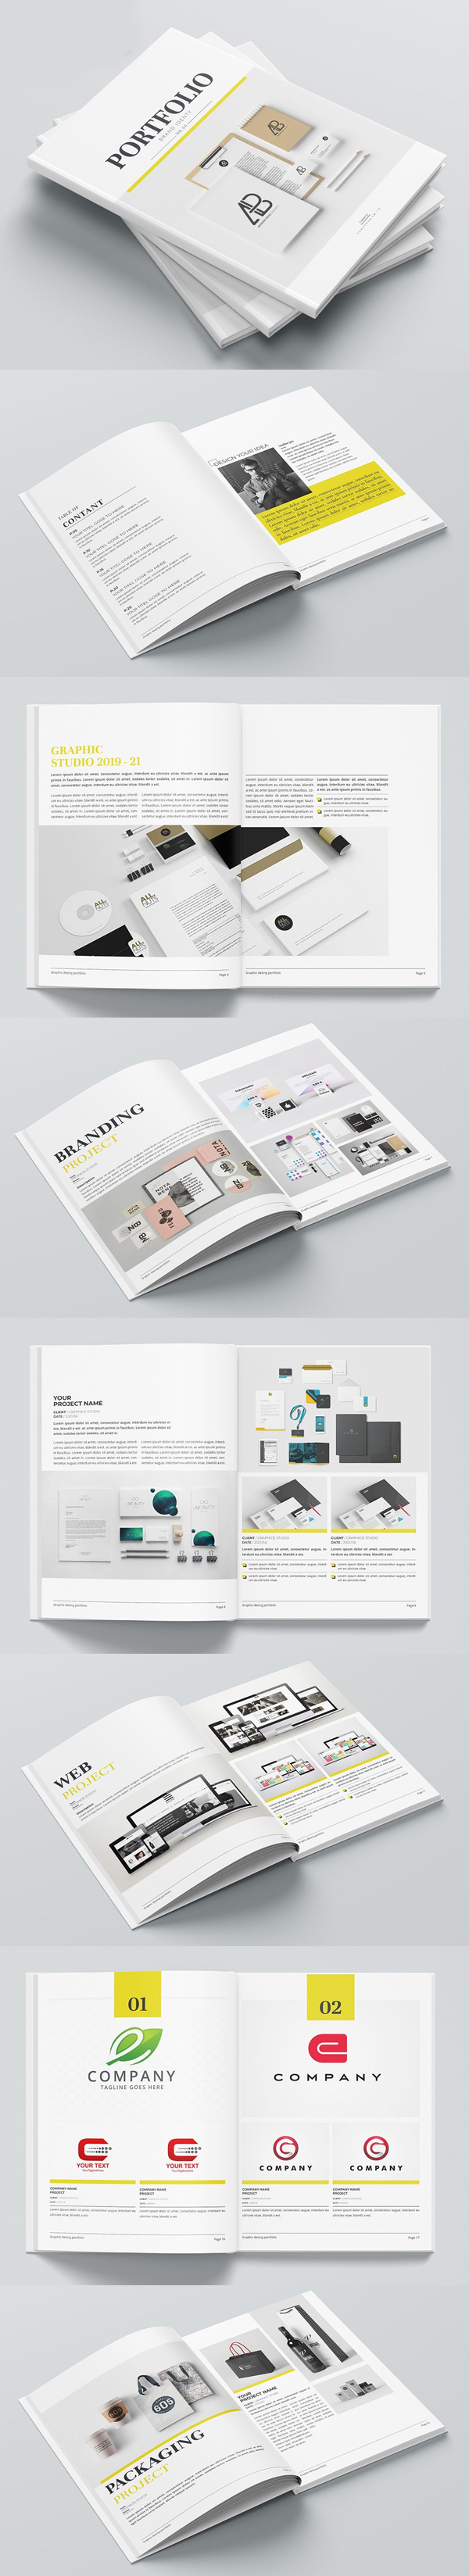 Minimal Brochure / Catalogs Template